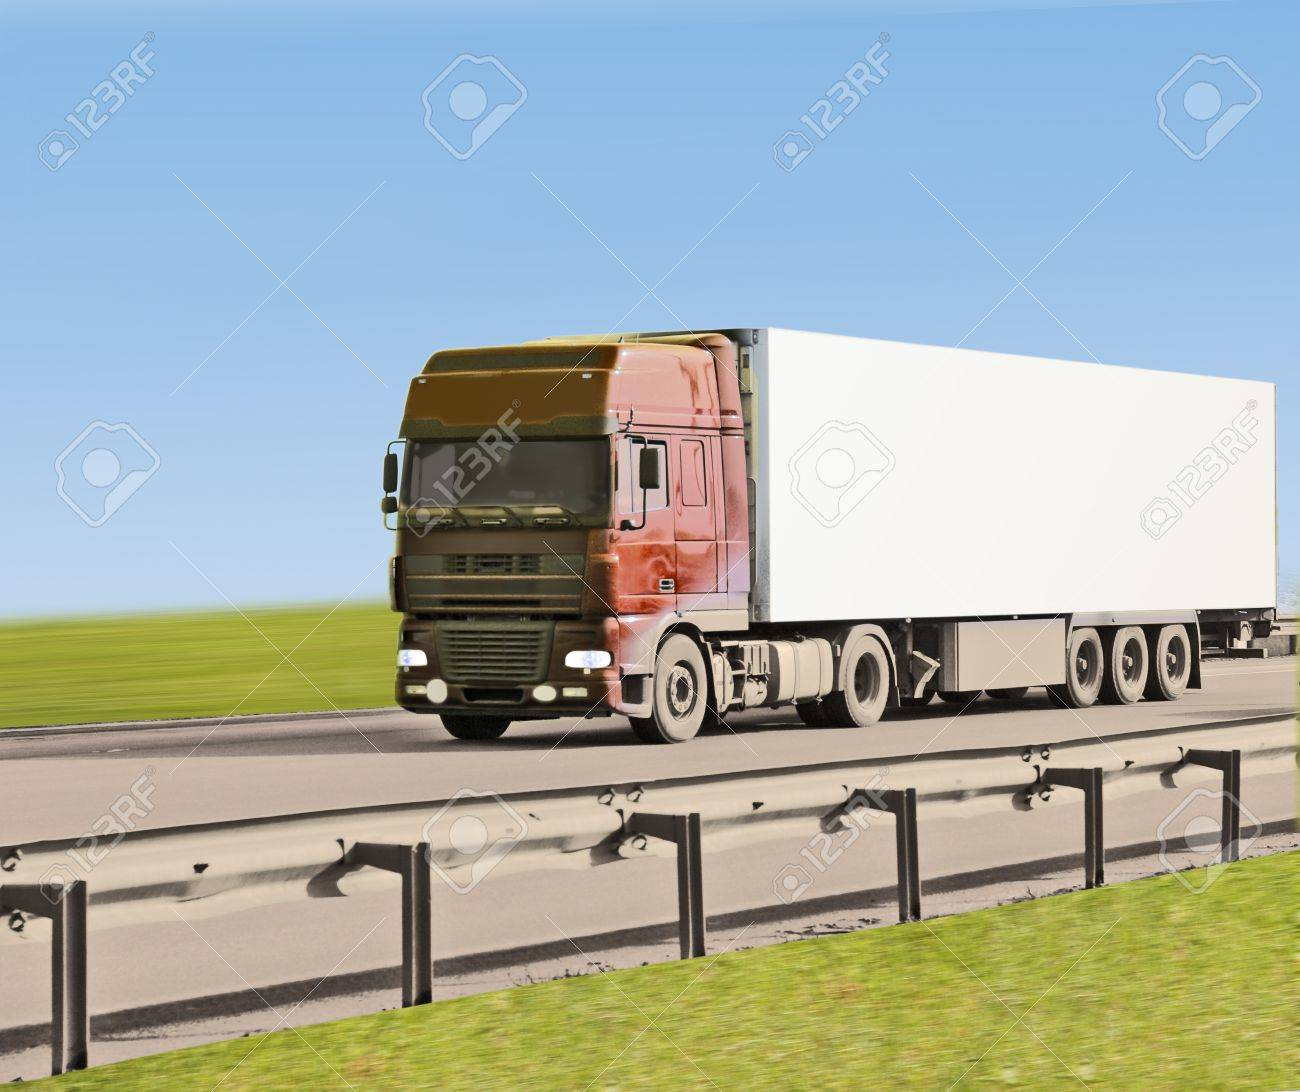 truck on road Stock Photo - 10074993